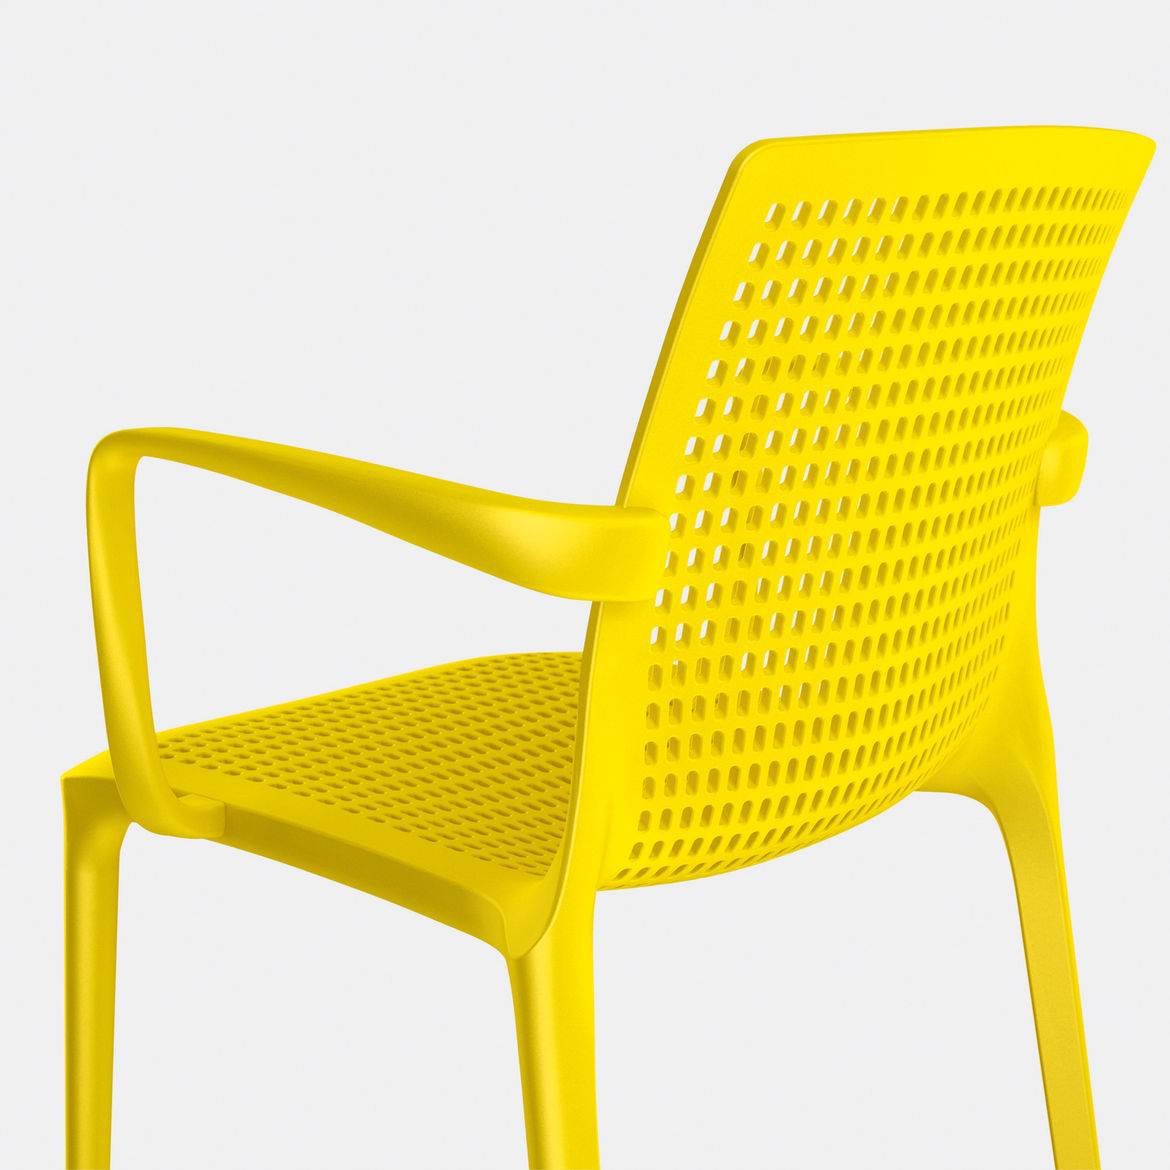 "The displays—which total to more than one person can visit in fair's six days—will include a booth by German manufacturer <a href=""http://www.brunner-group.com"">Brunner</a>. The company will be showing off its Twin chair among others.<br /><br /><p><em><s"